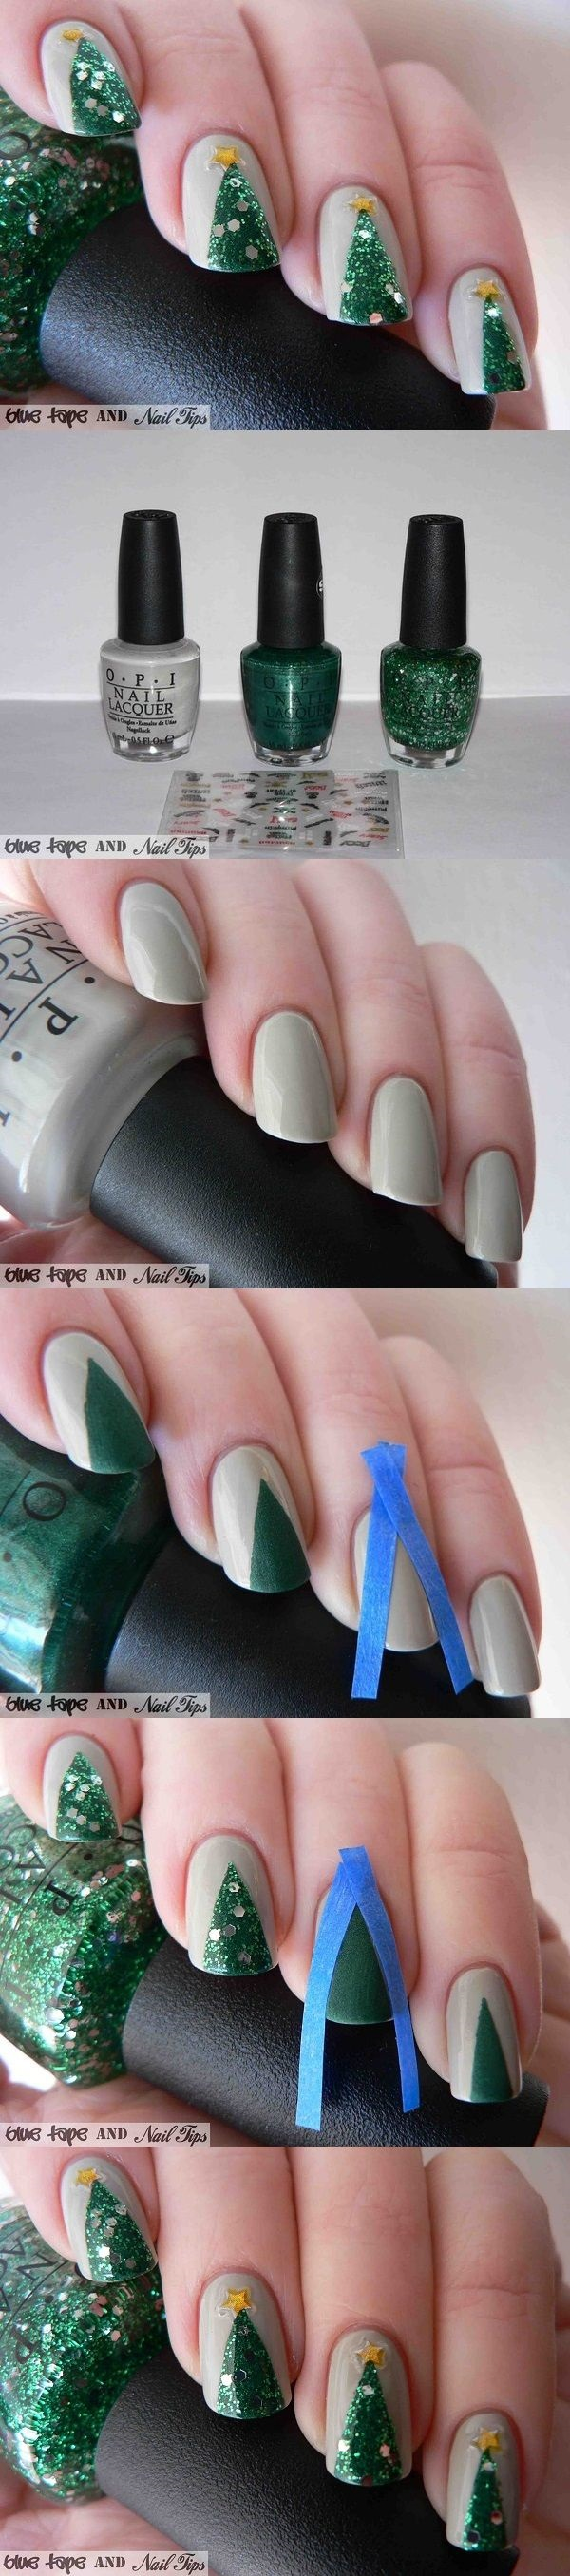 Simple Winter Nail art Ideas for Short Nails (37)